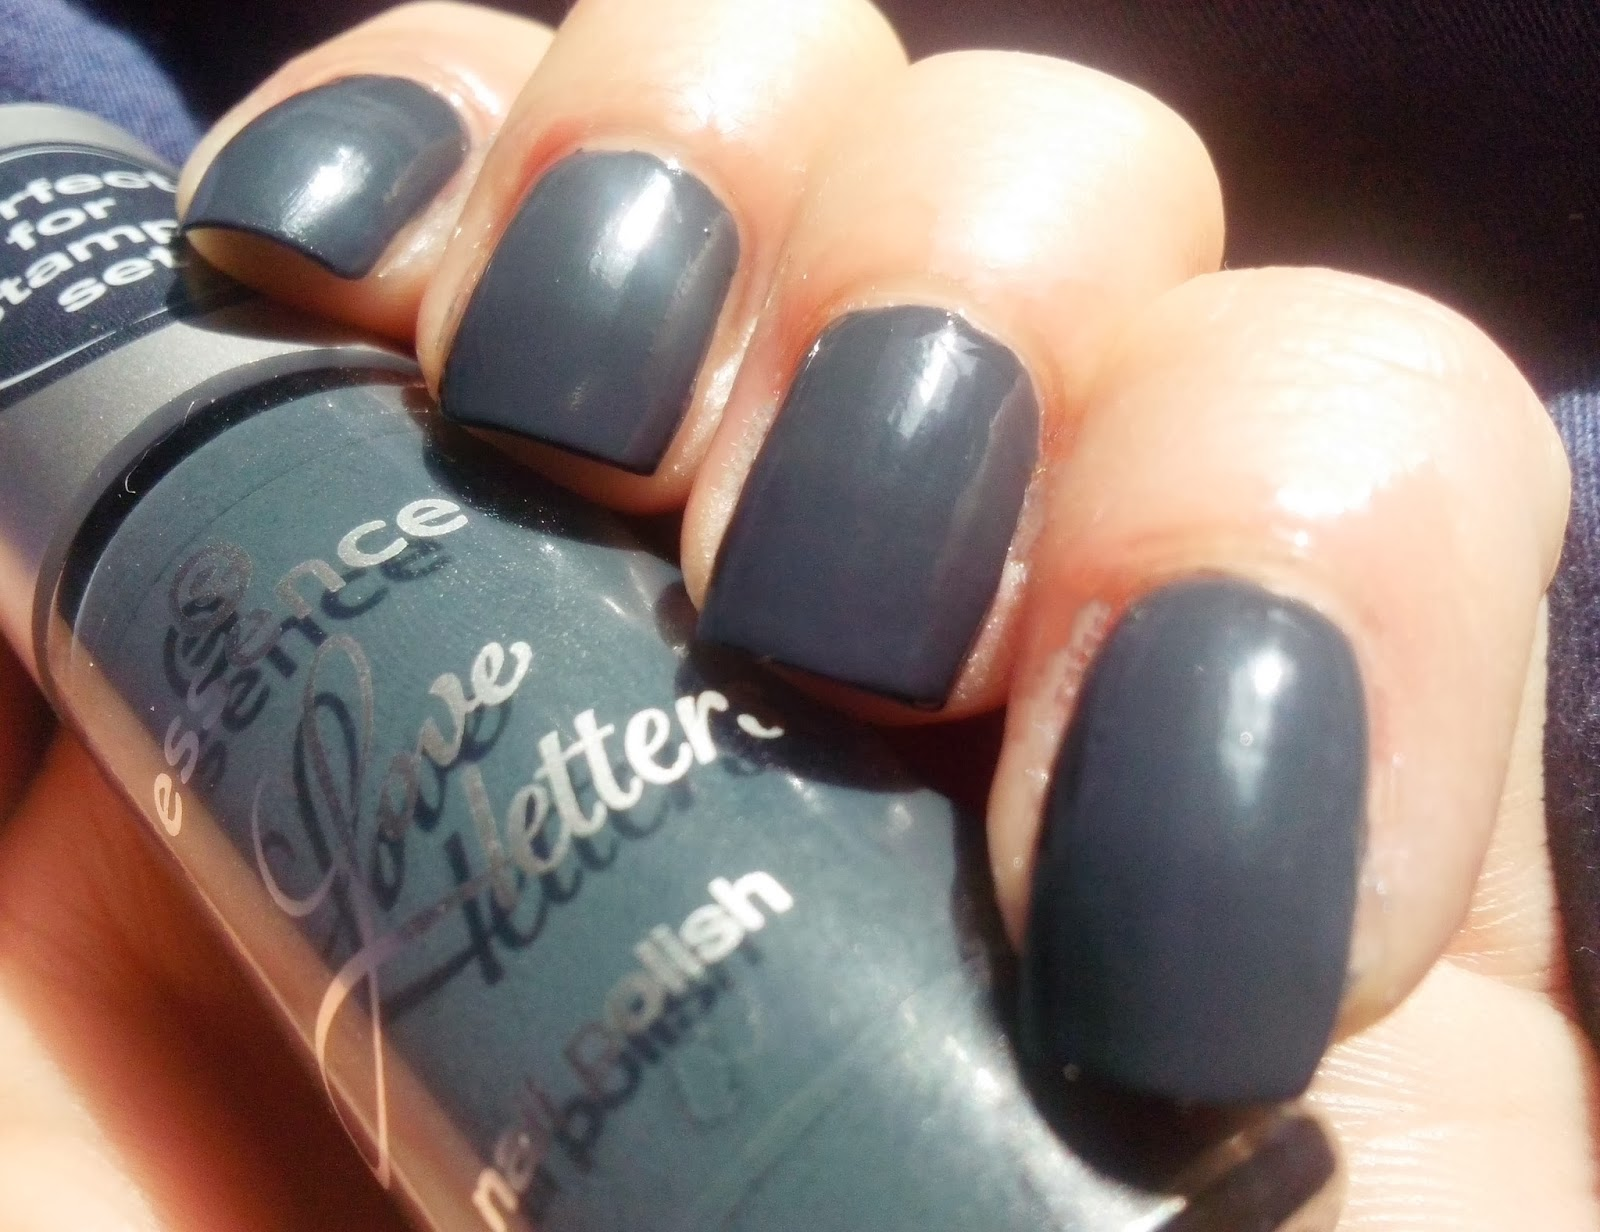 Colour On My Nails Review Essence Love Letters Stampy Set And